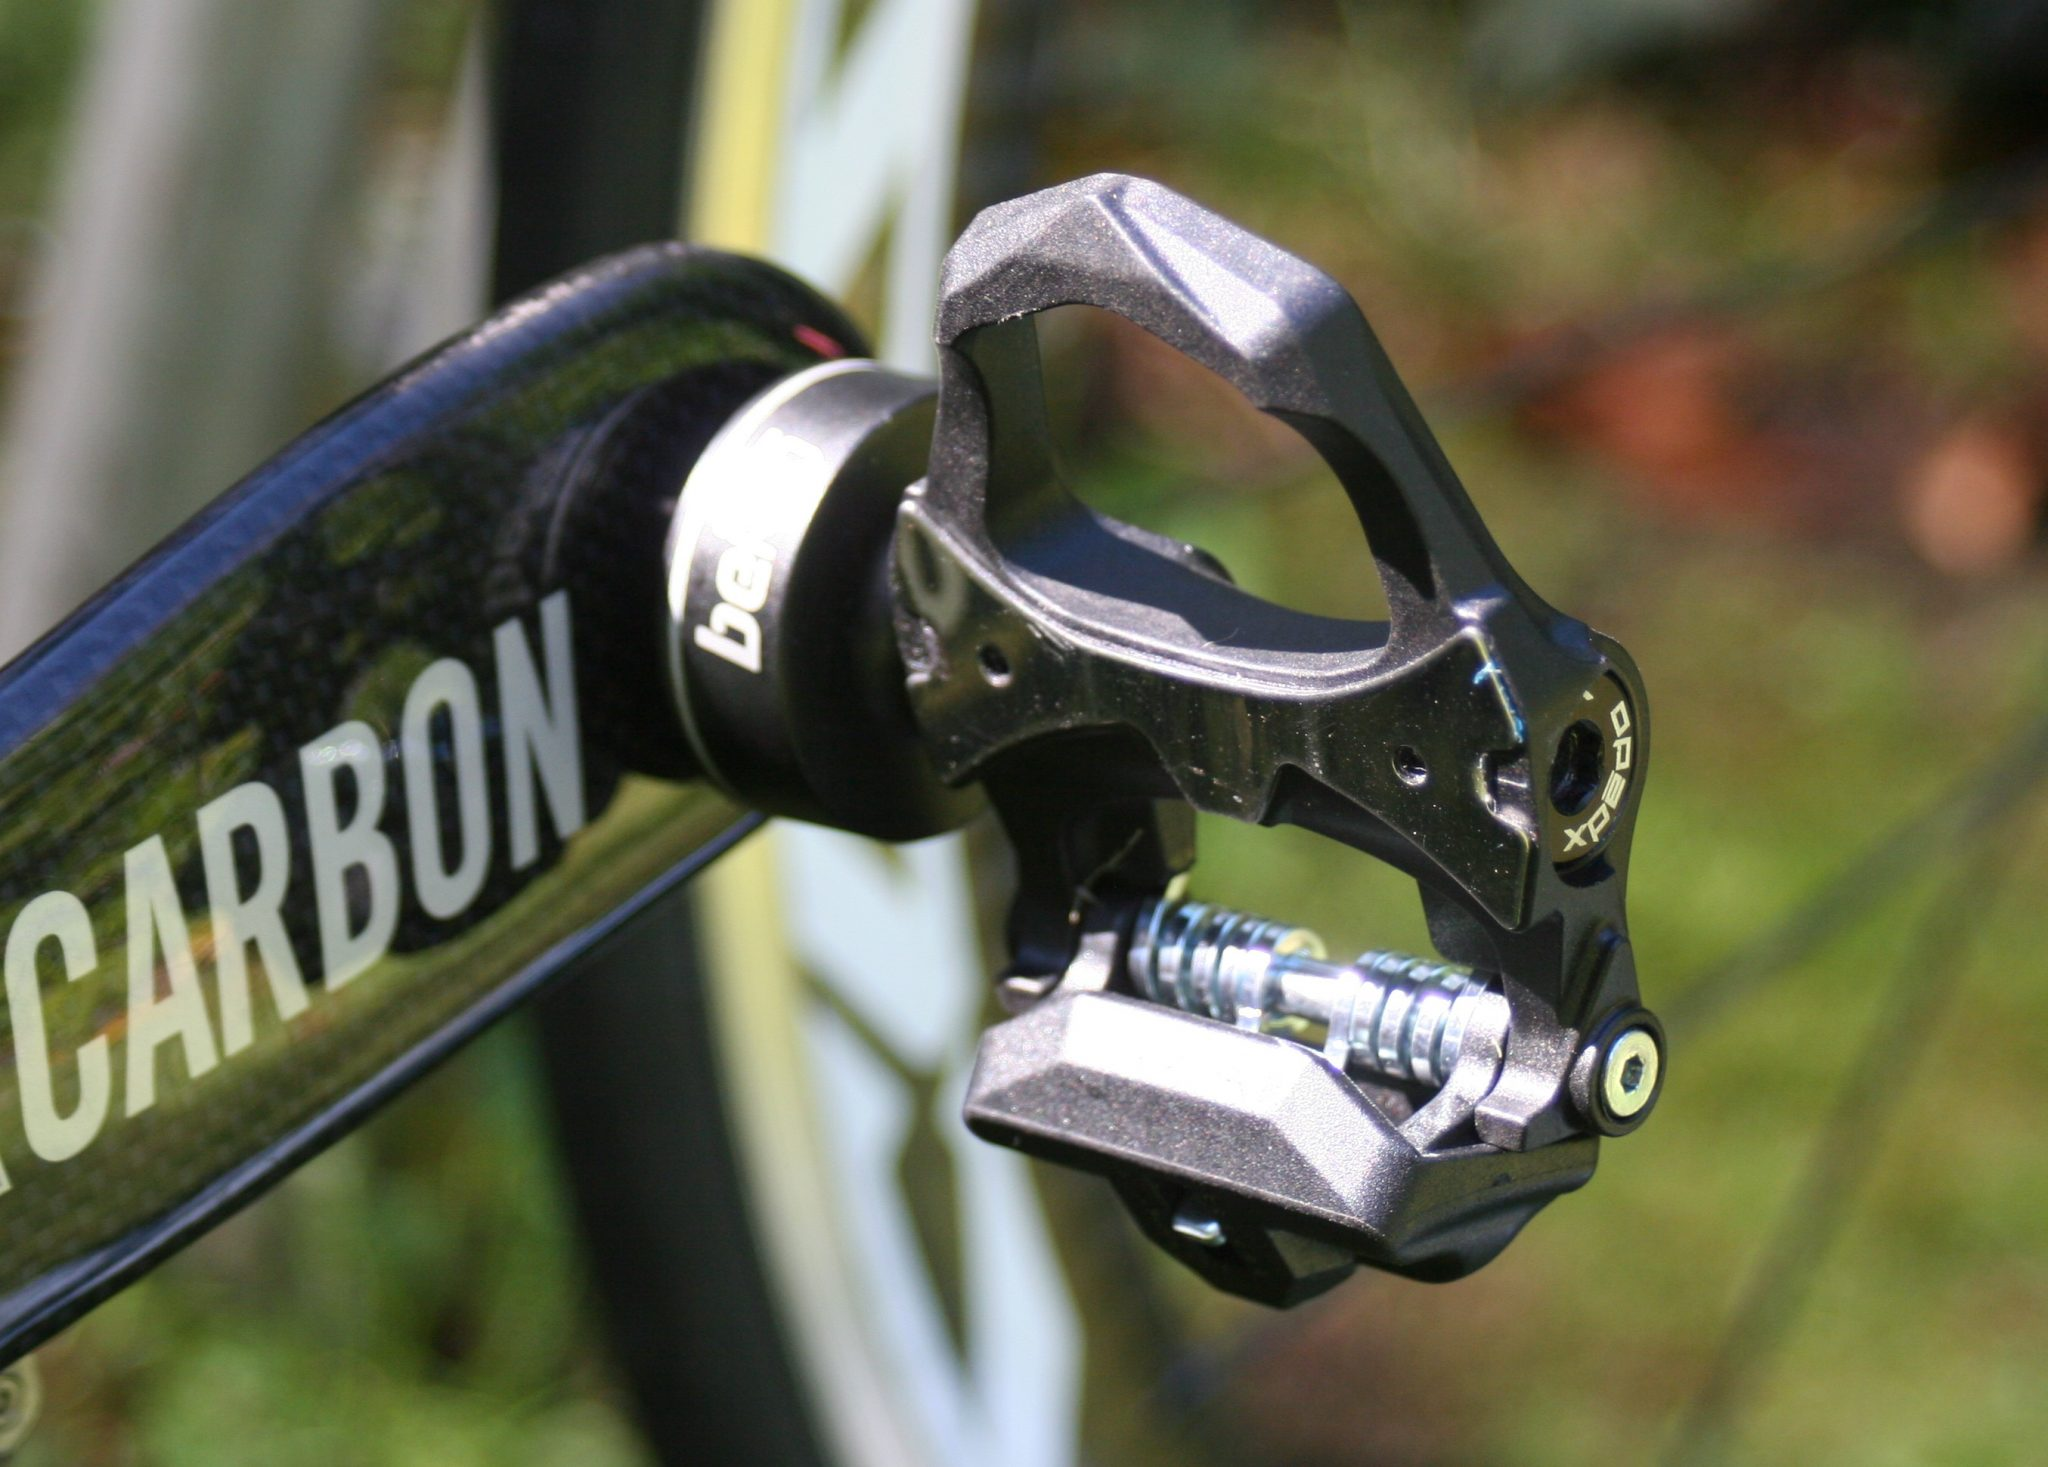 Favero bePRO Power Meter Pedals - Carbon Cranks